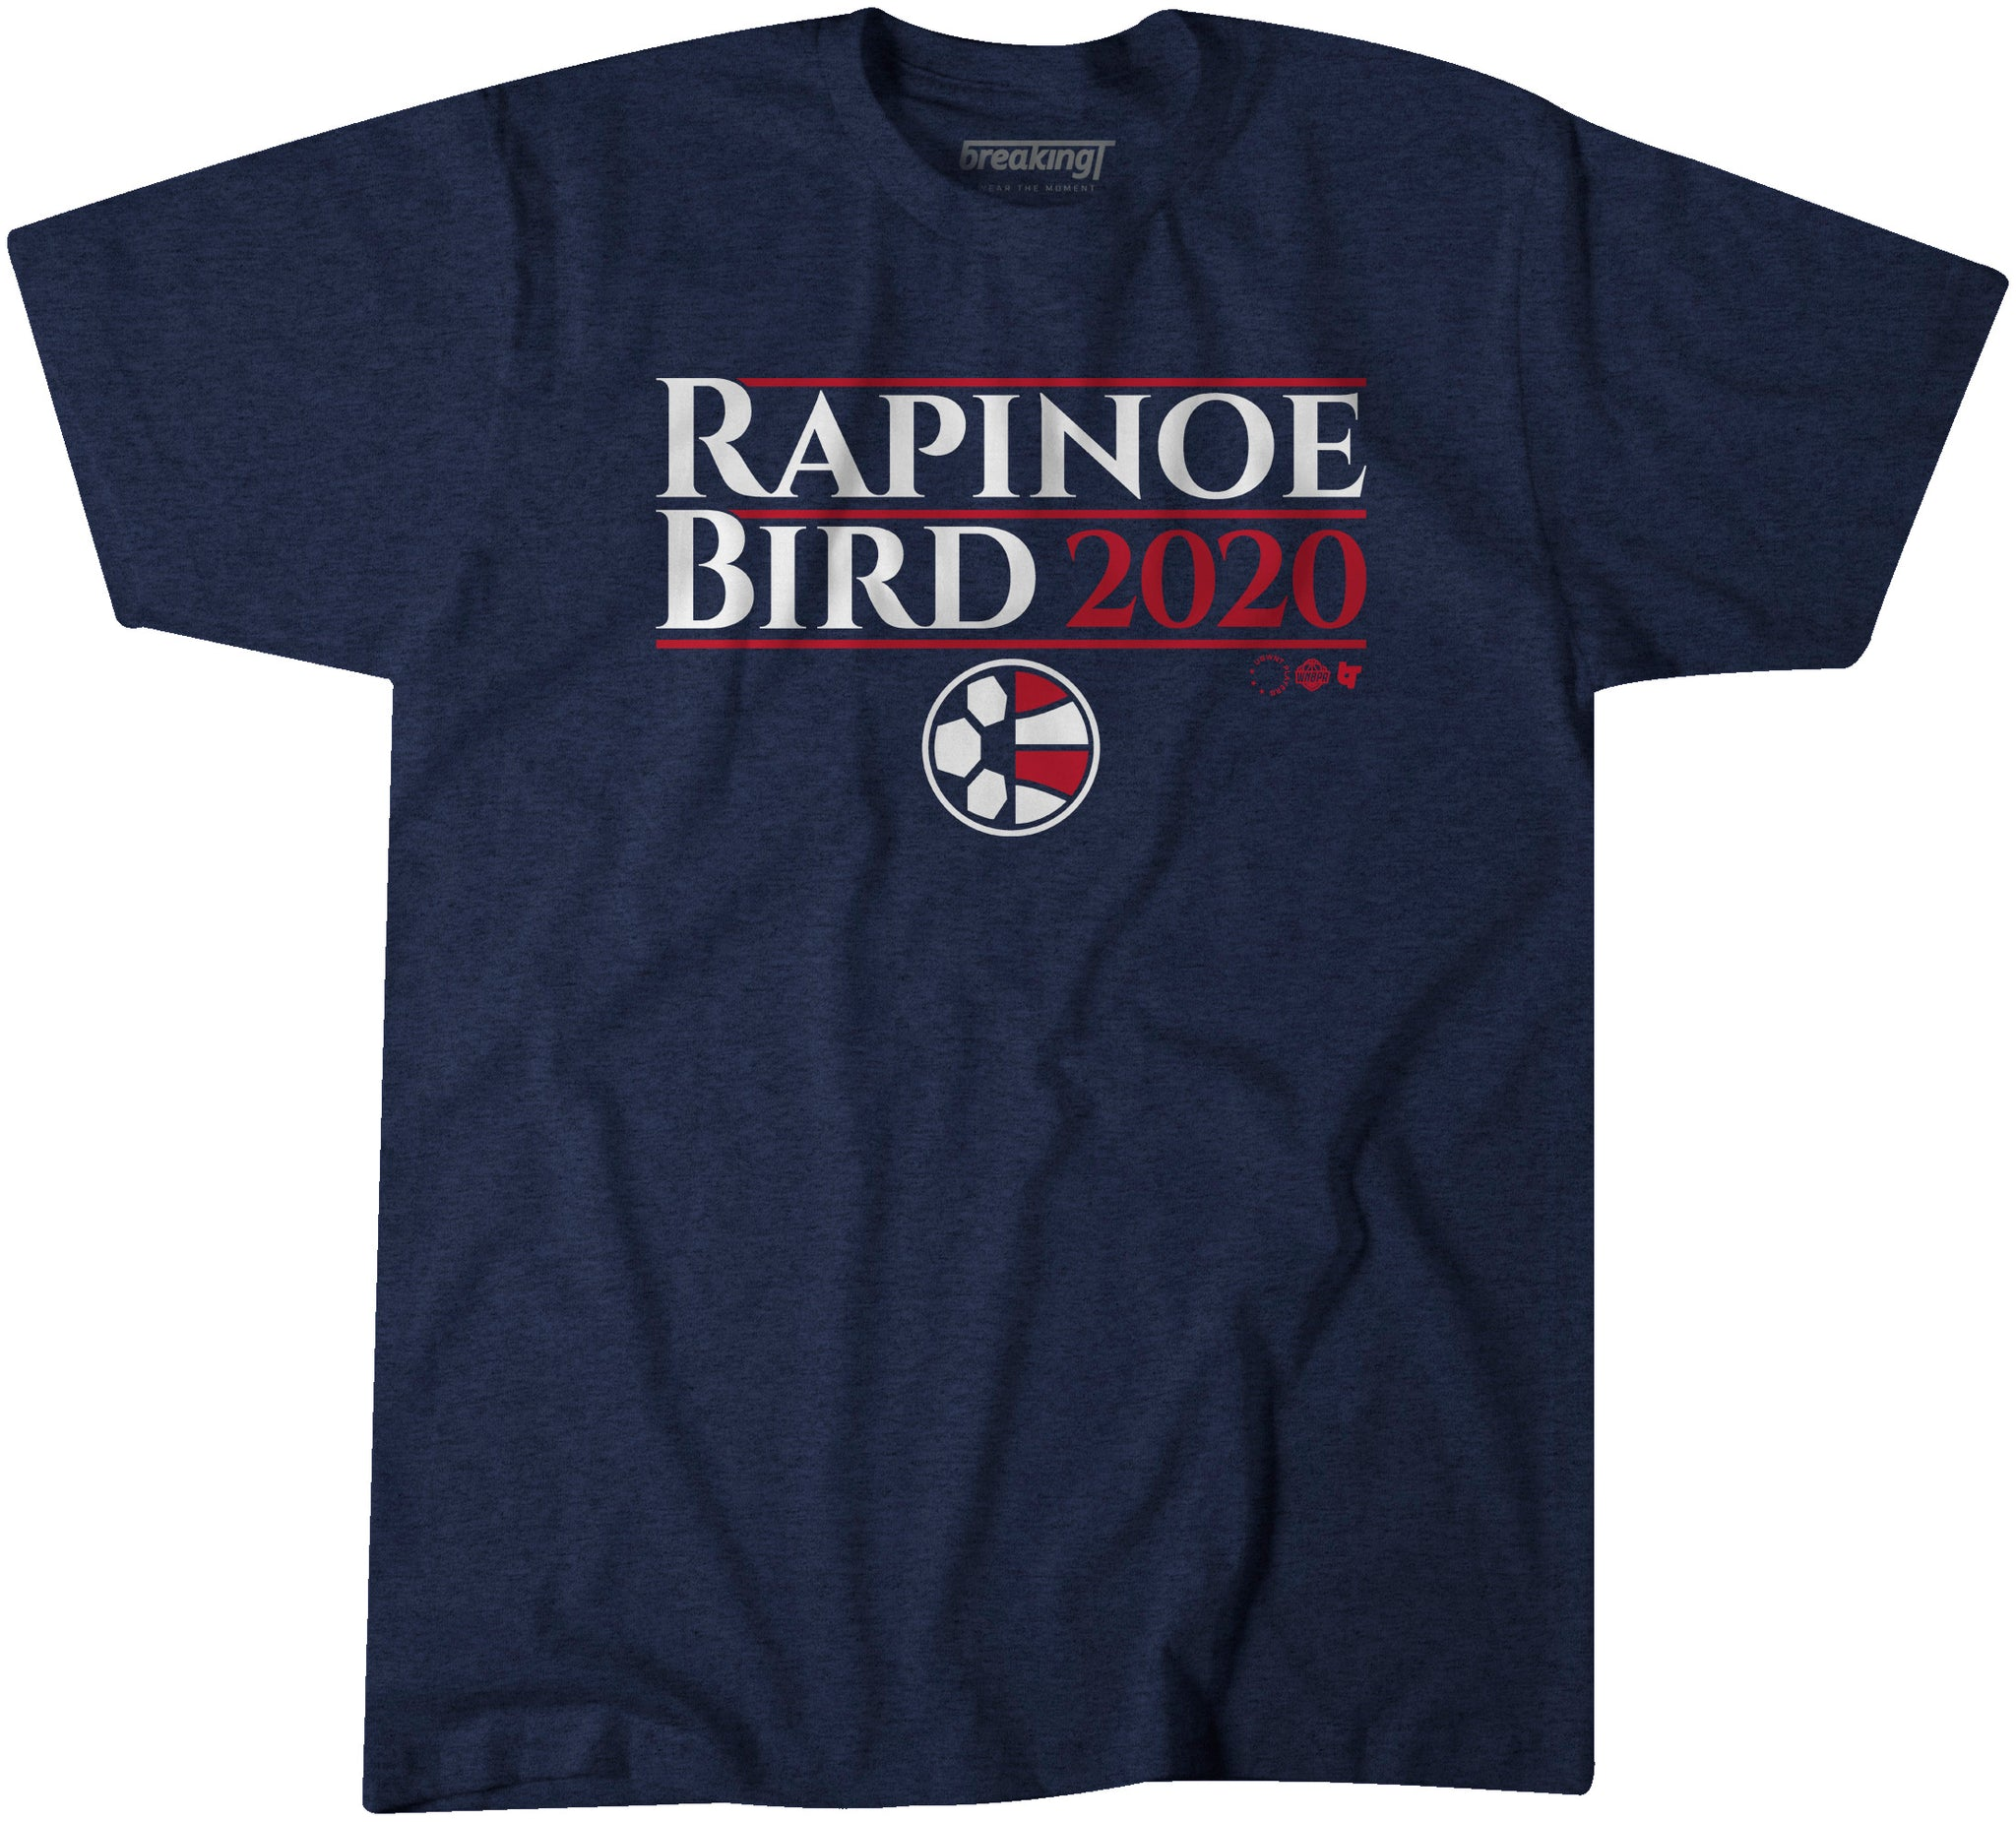 timeless design cb9c2 a4d08 Rapinoe Bird 2020